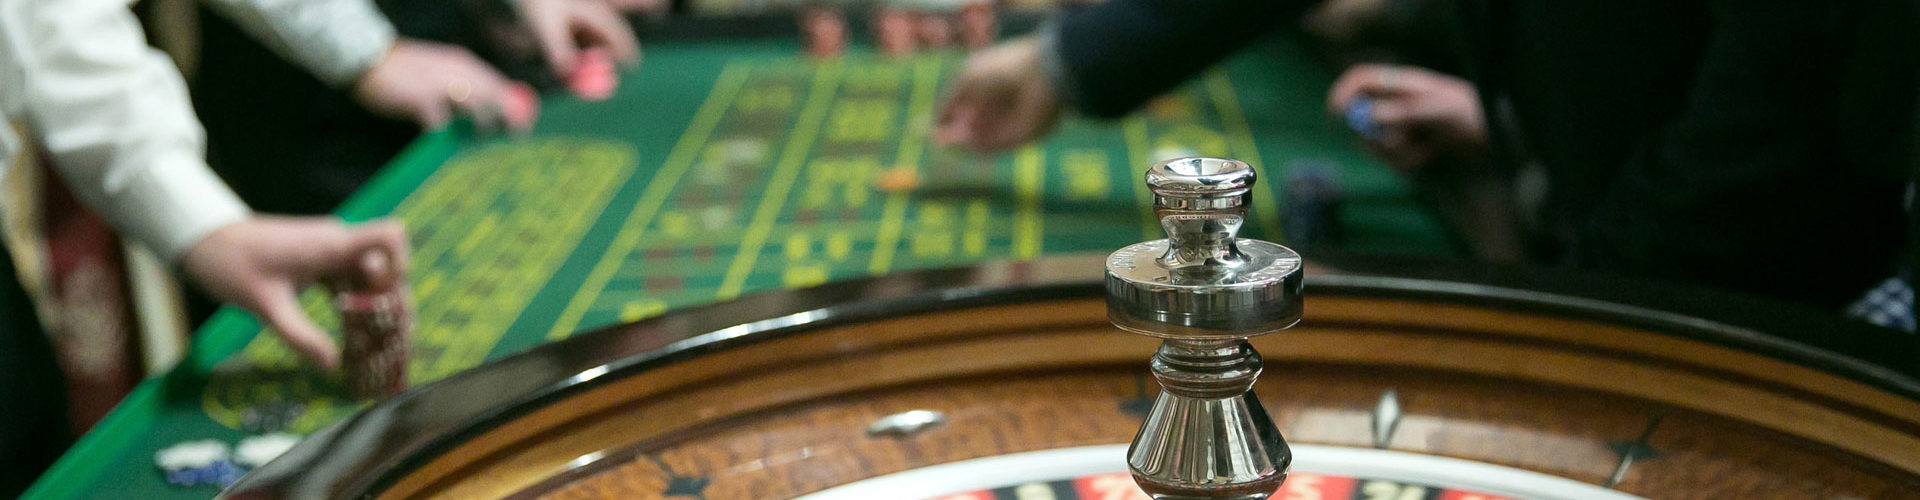 The Best Places to Gamble in Vegas as a Local